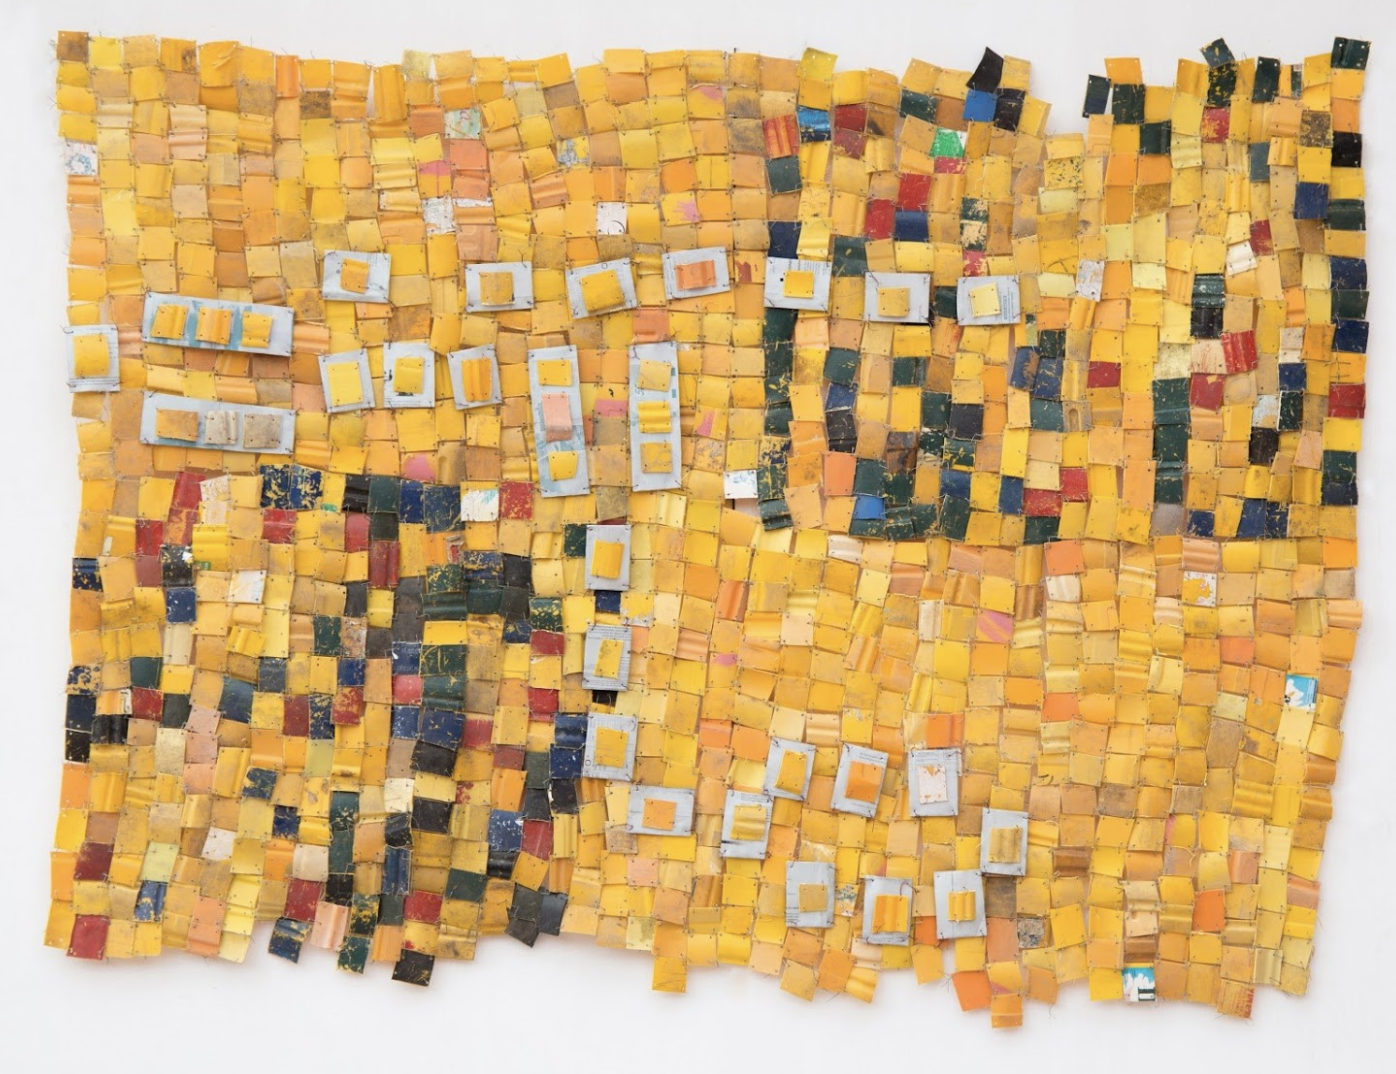 Serge Attukwei Clottey Every Day Myth: Survival and Sustenance - Image via the artist and Minnesota Street Projects